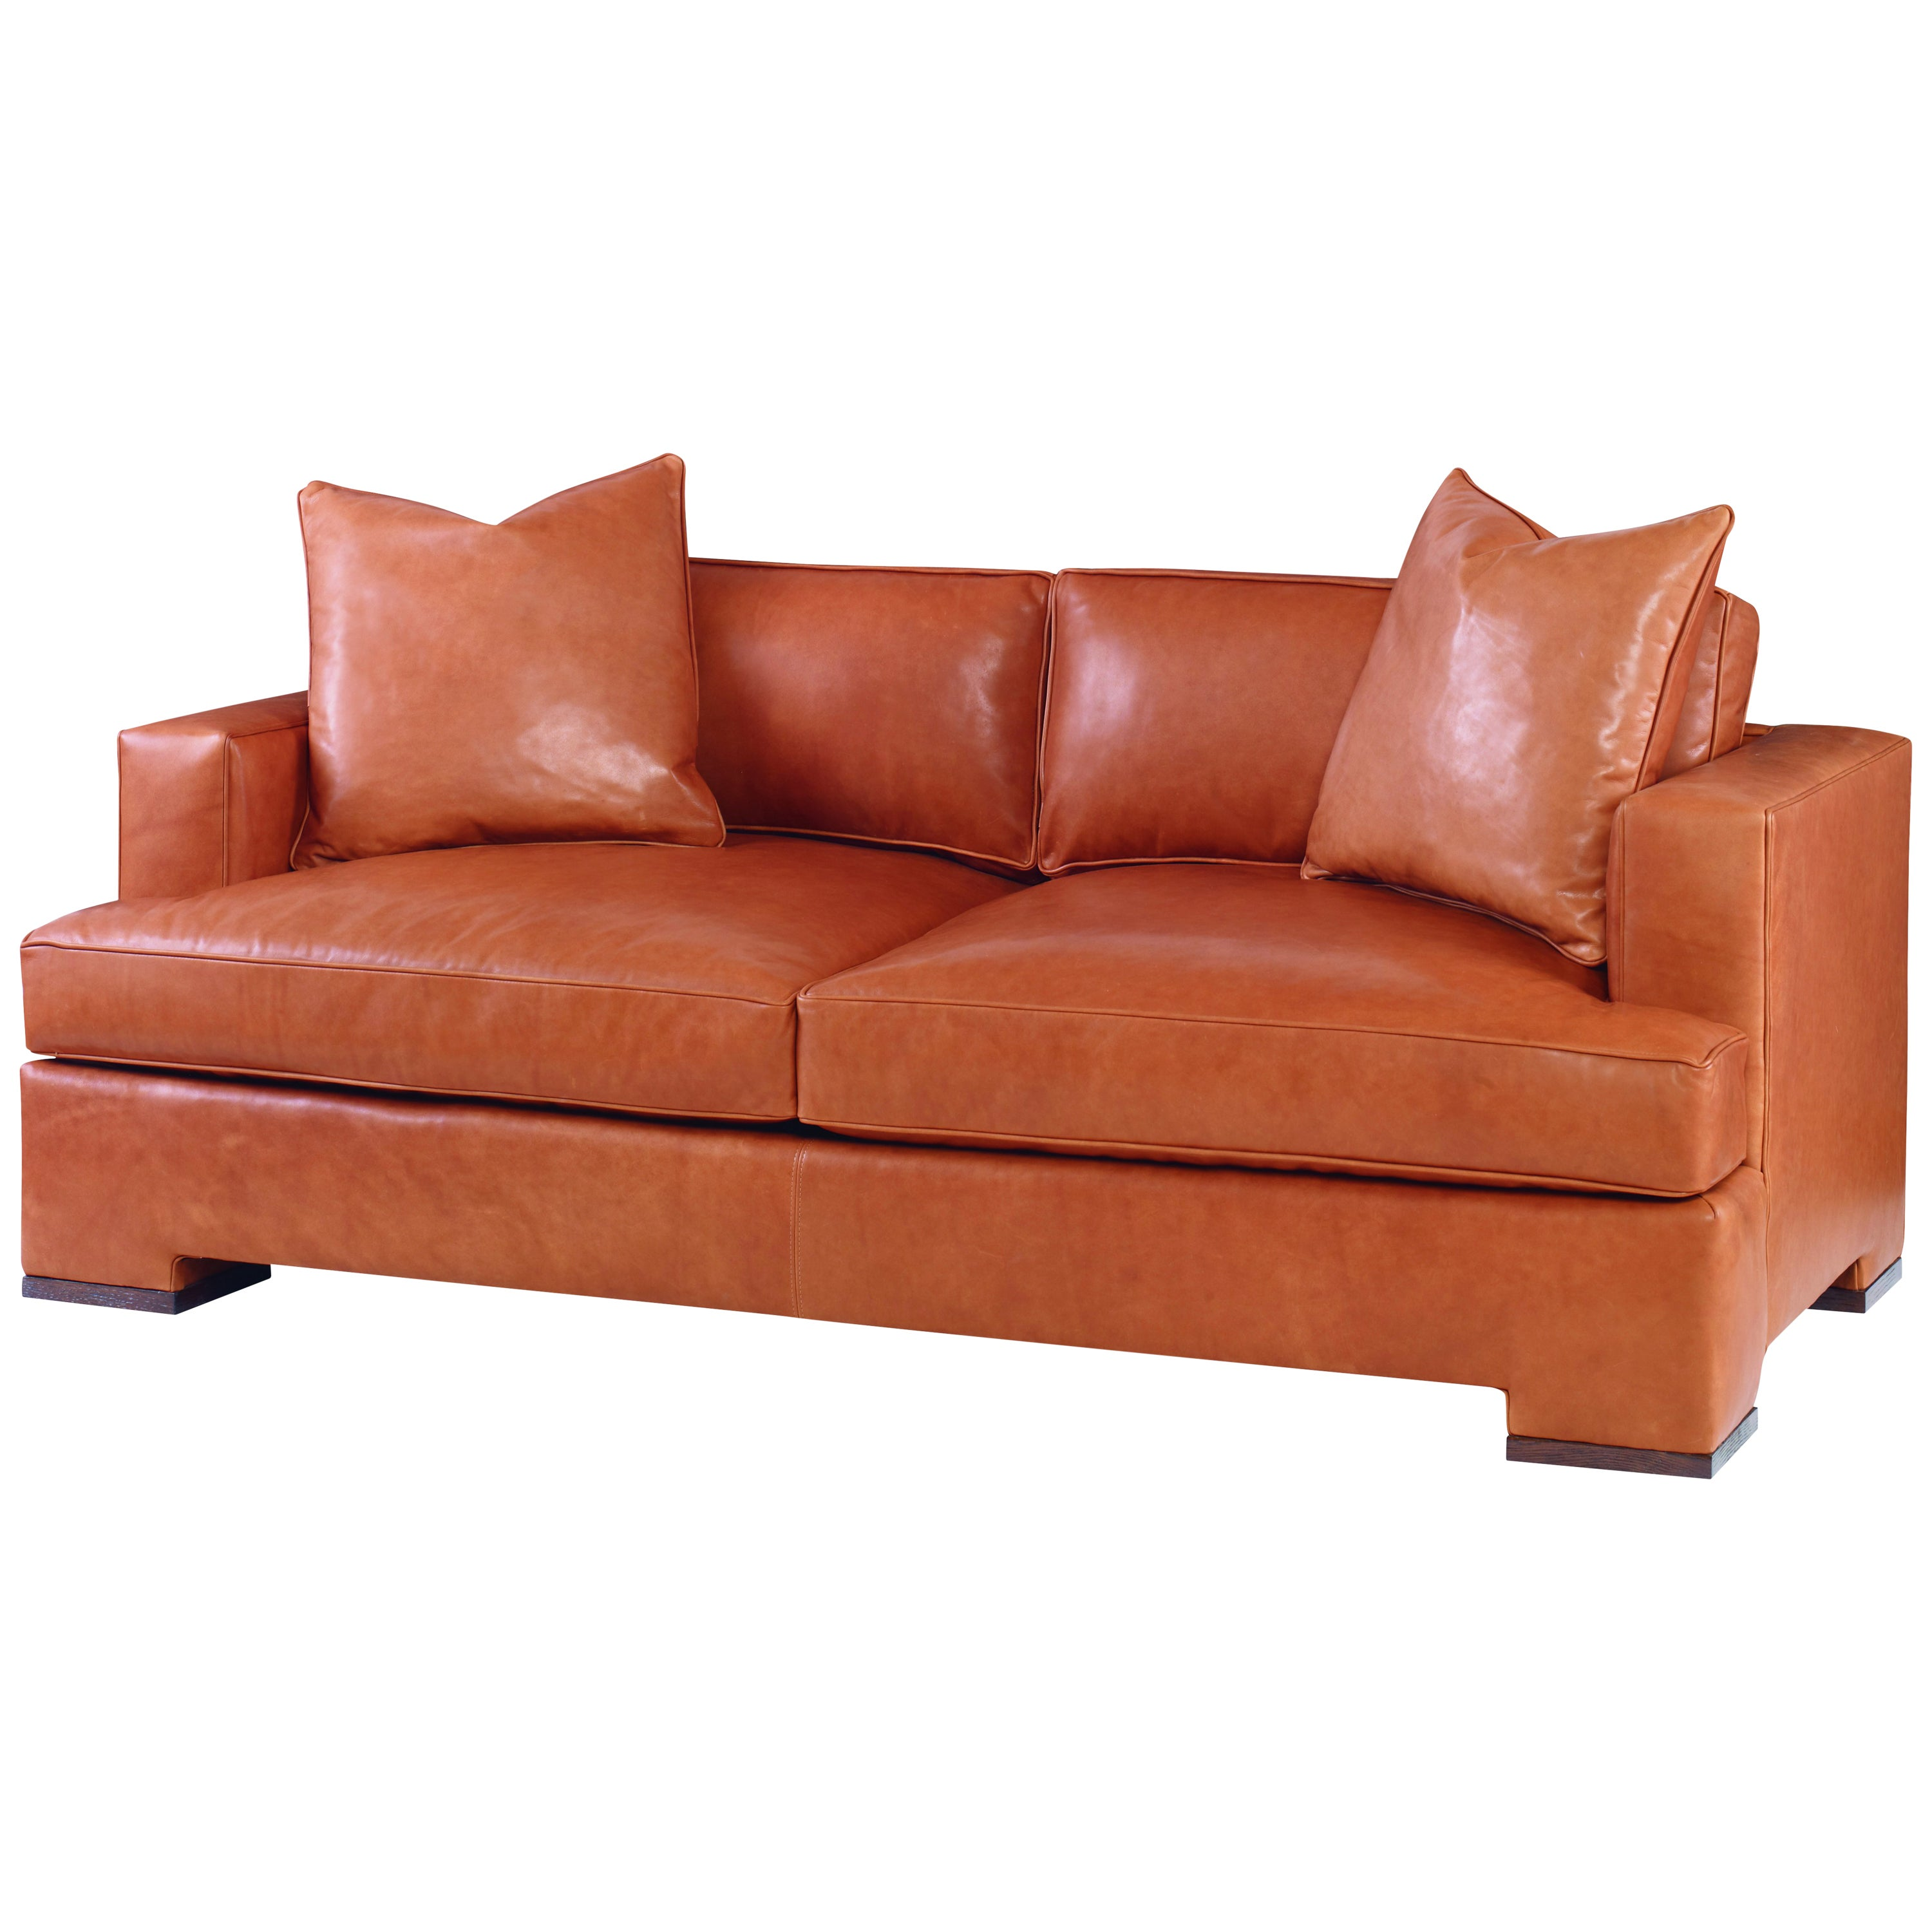 Benson Apartment Sofa For Sale at 1stdibs